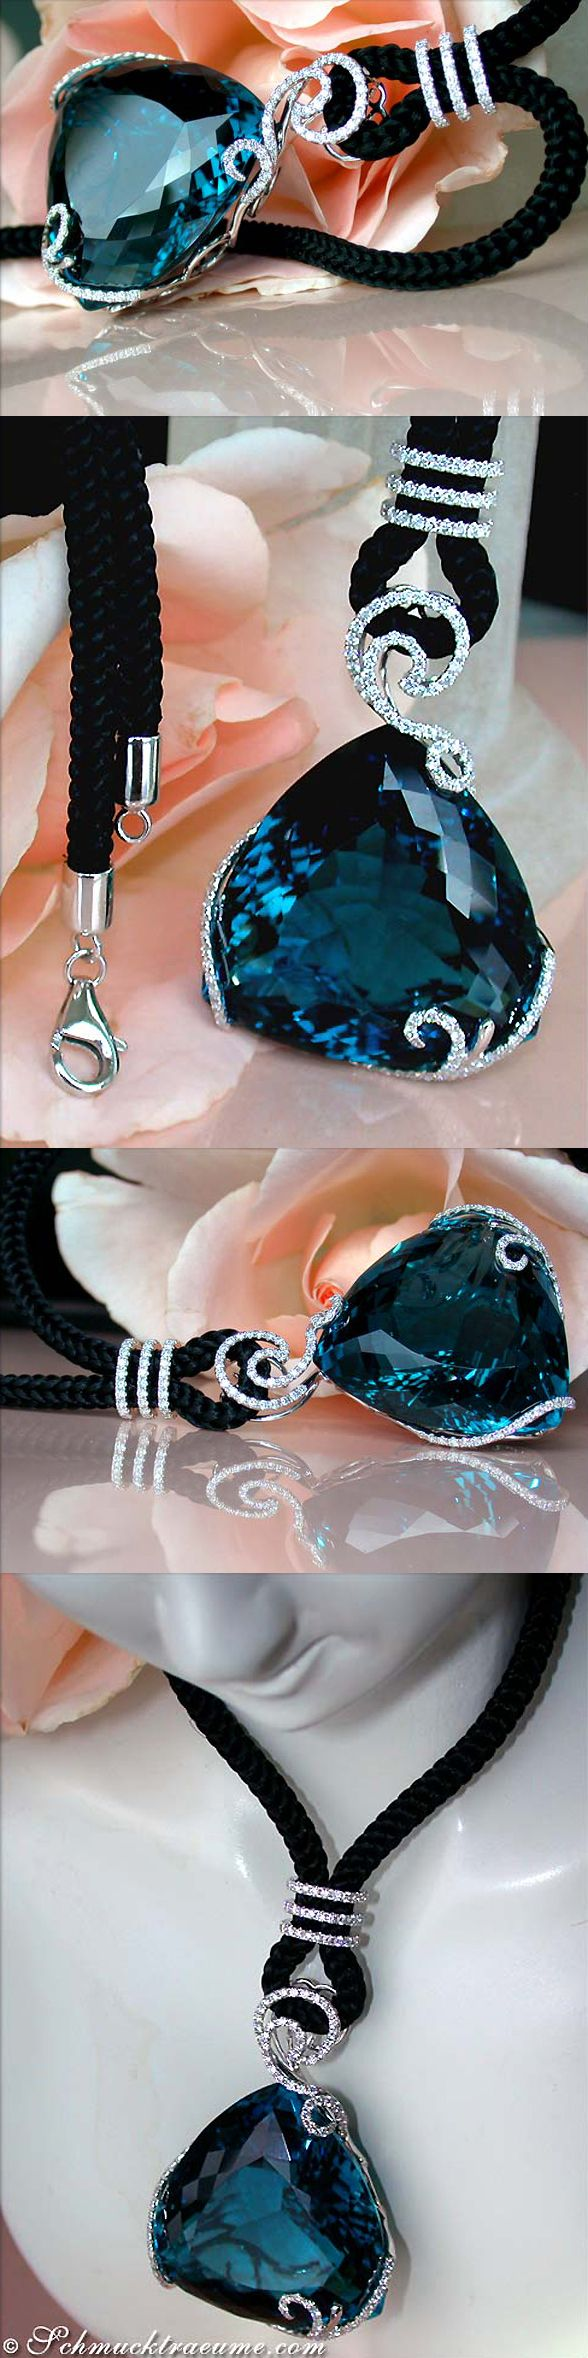 Grand Blue Topaz Diamond Necklace, 99,02 cts. WG14K - Find out: schmucktraeume.com - Like: https://www.facebook.com/pages/Noble-Juwelen/150871984924926 - Contact: info@schmucktraeume.com. LBV